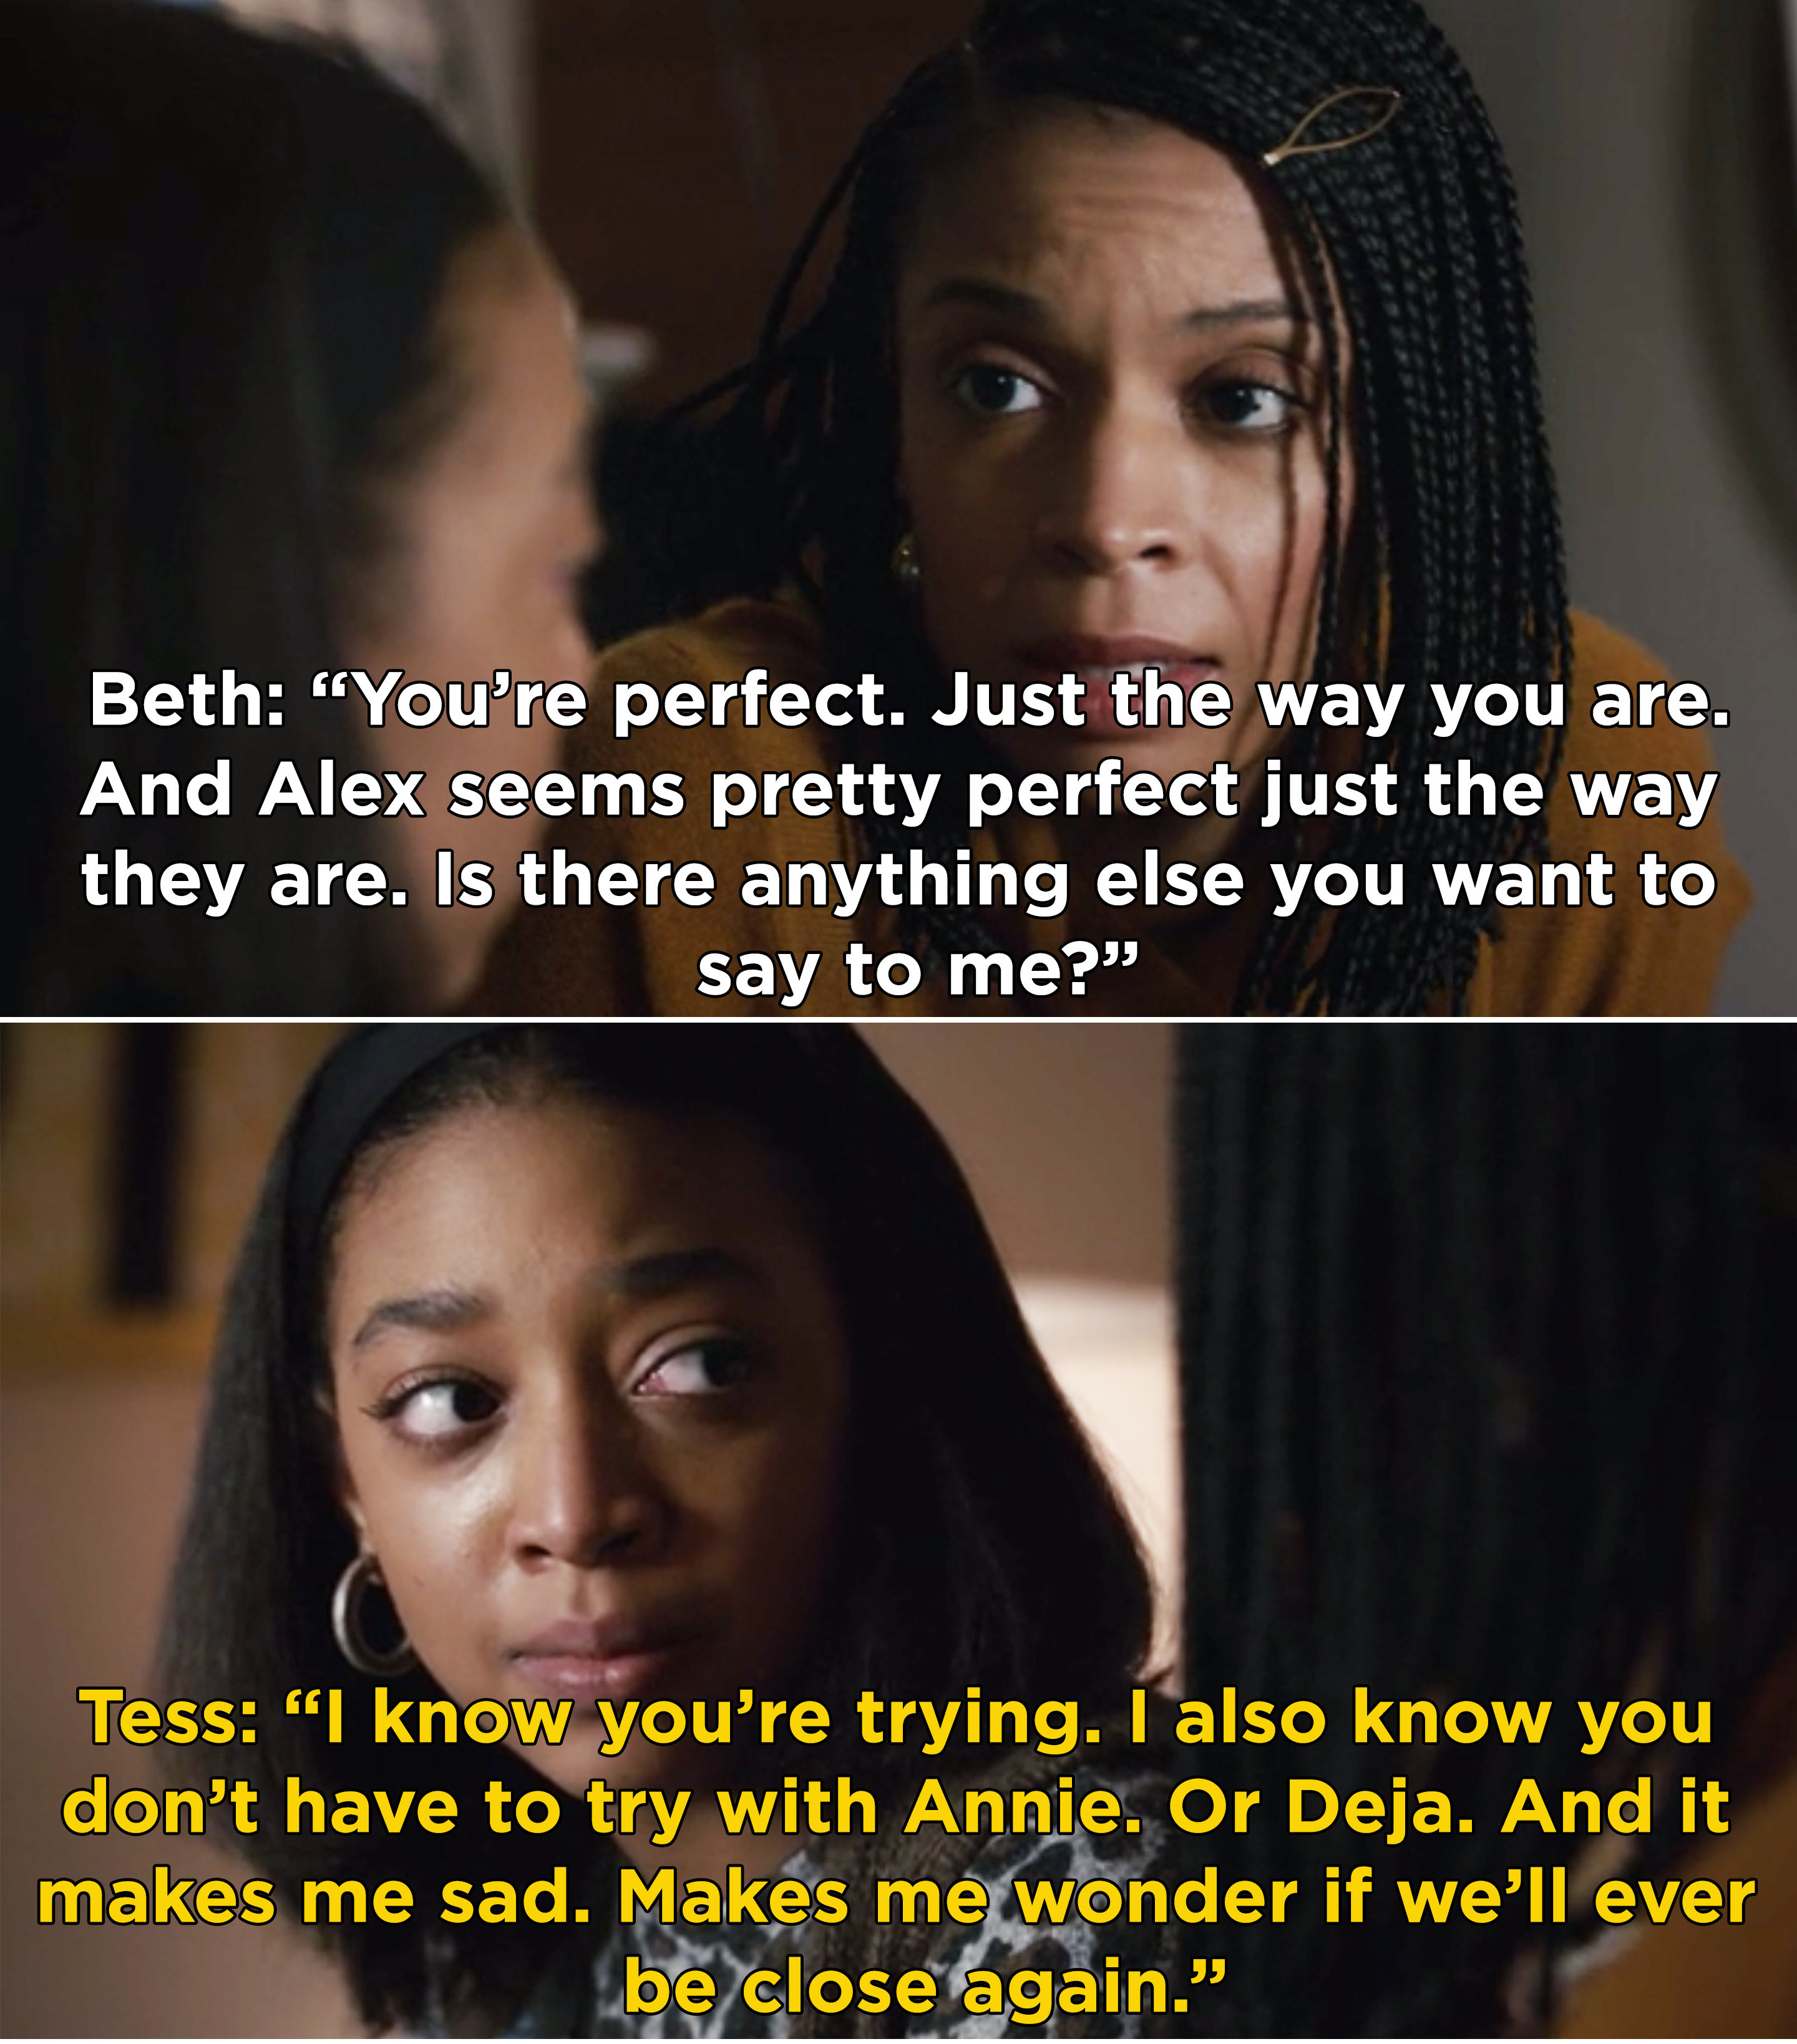 """Tess telling Beth, """"I also know you don't have to try with Annie. Or Deja. It makes me sad. Makes me wonder if we'll ever be close again"""""""